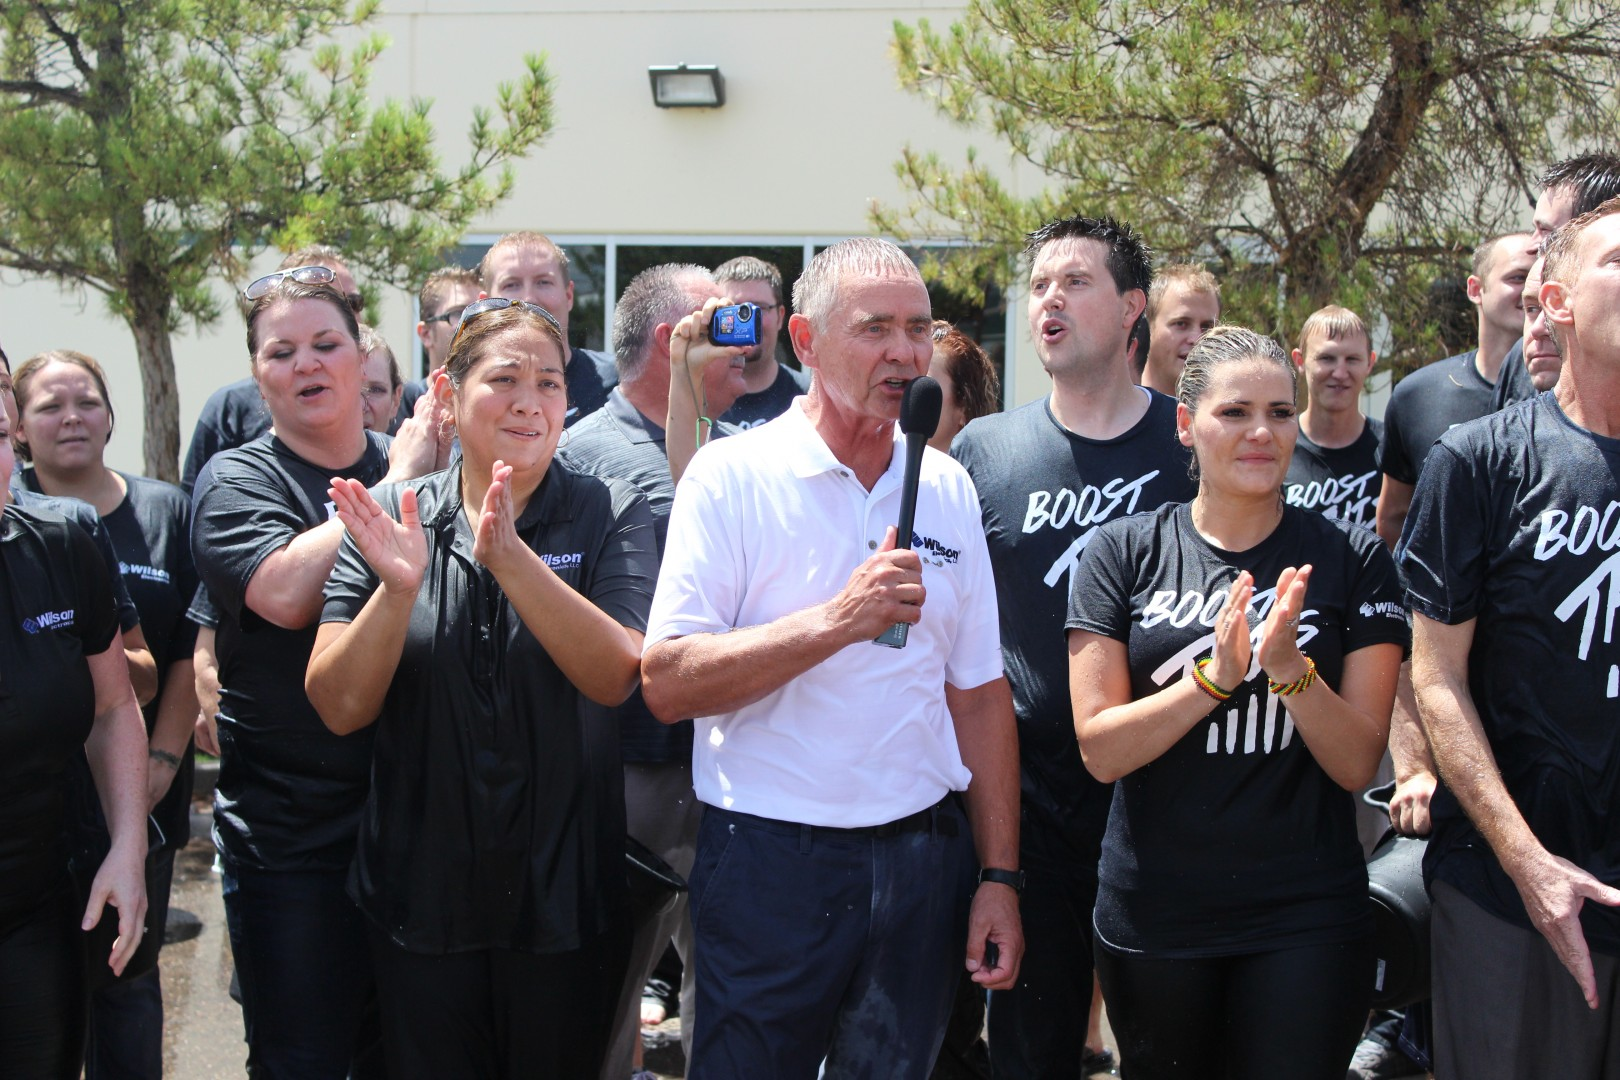 Don Blohm, COO of Wilson Electronics, gives a speech after completing the ASL Ice Bucket Challenge in St. George on Aug. 21, 2014 | Photo by Devan Chavez, St. George News